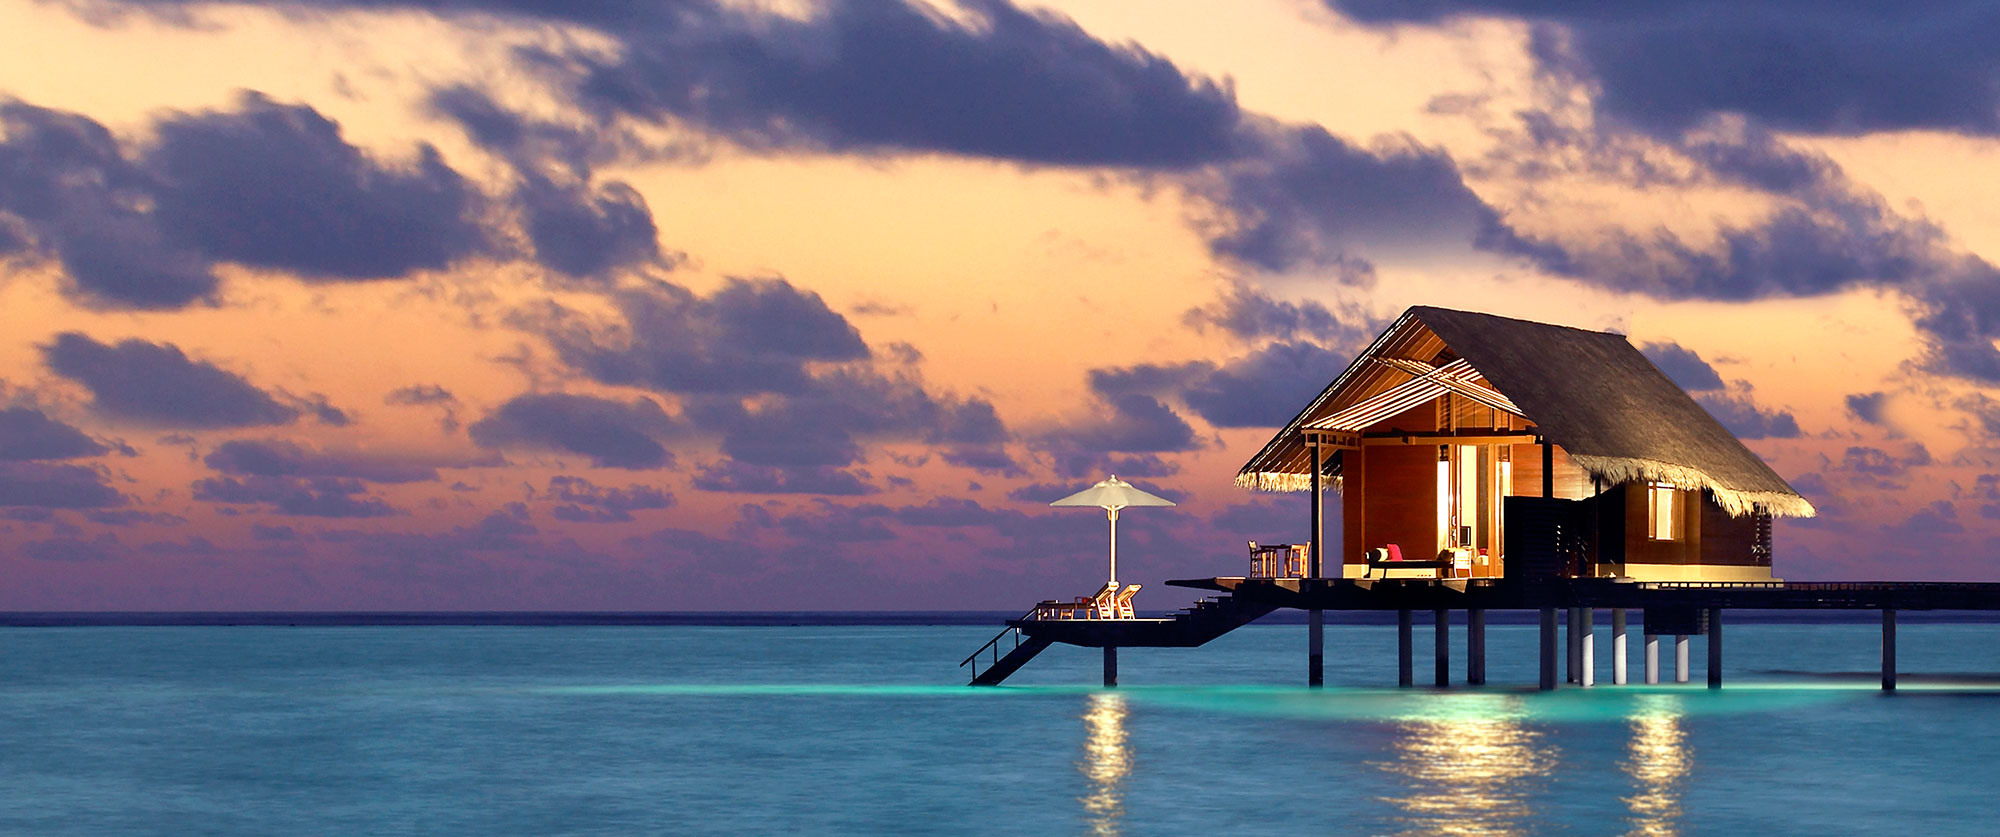 Maldives Vacation Packages - Maldives Vacations - Maldives - Beaches Best Beaches